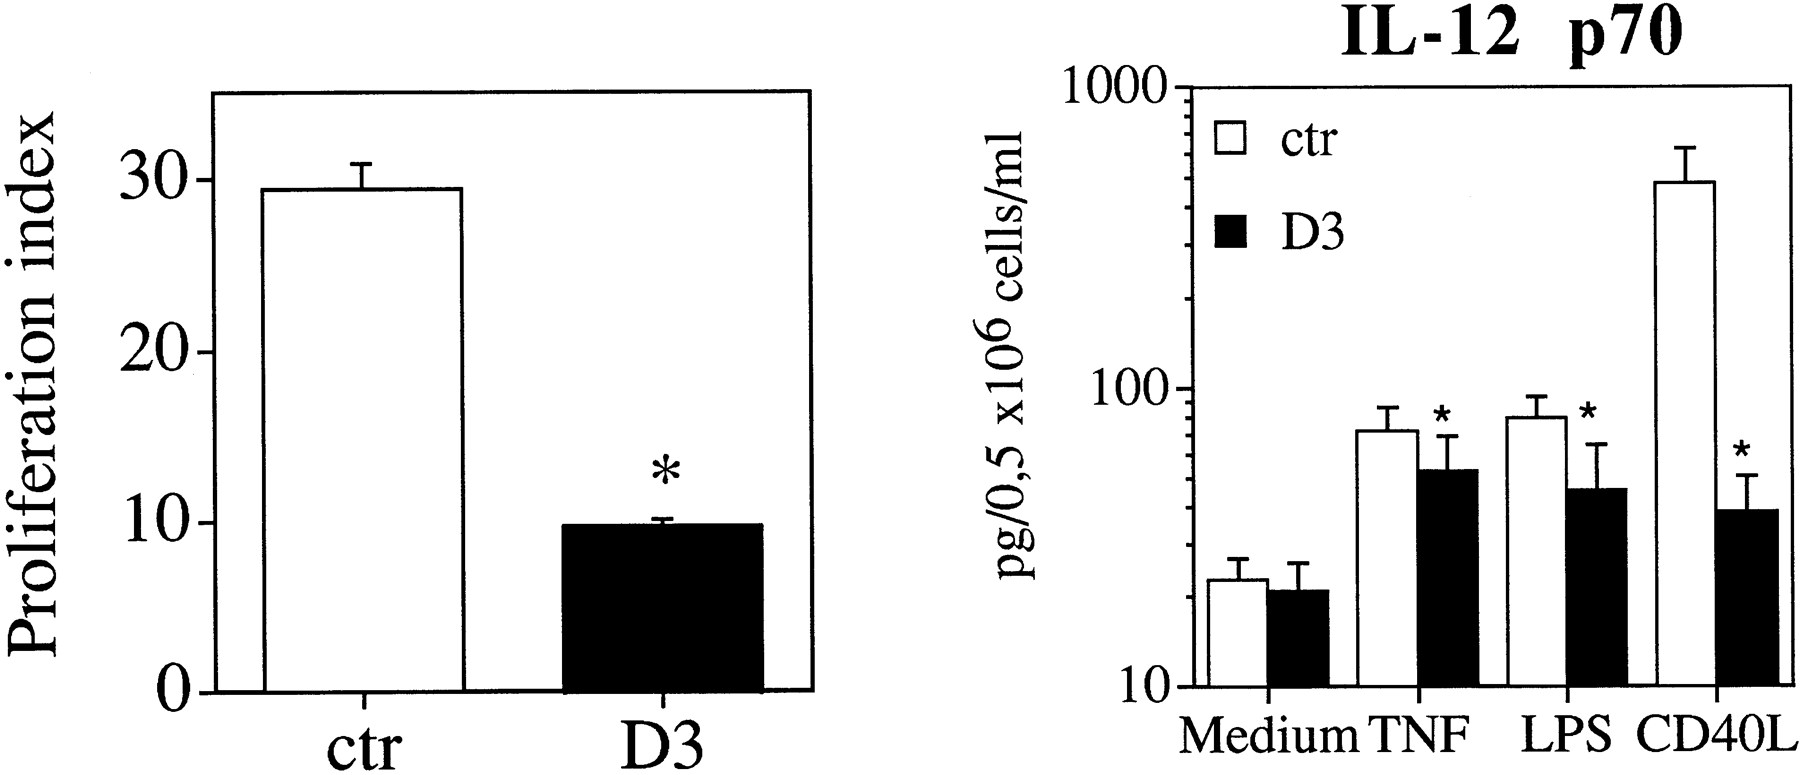 Vitamin D3 Affects Differentiation, Maturation, and Function of